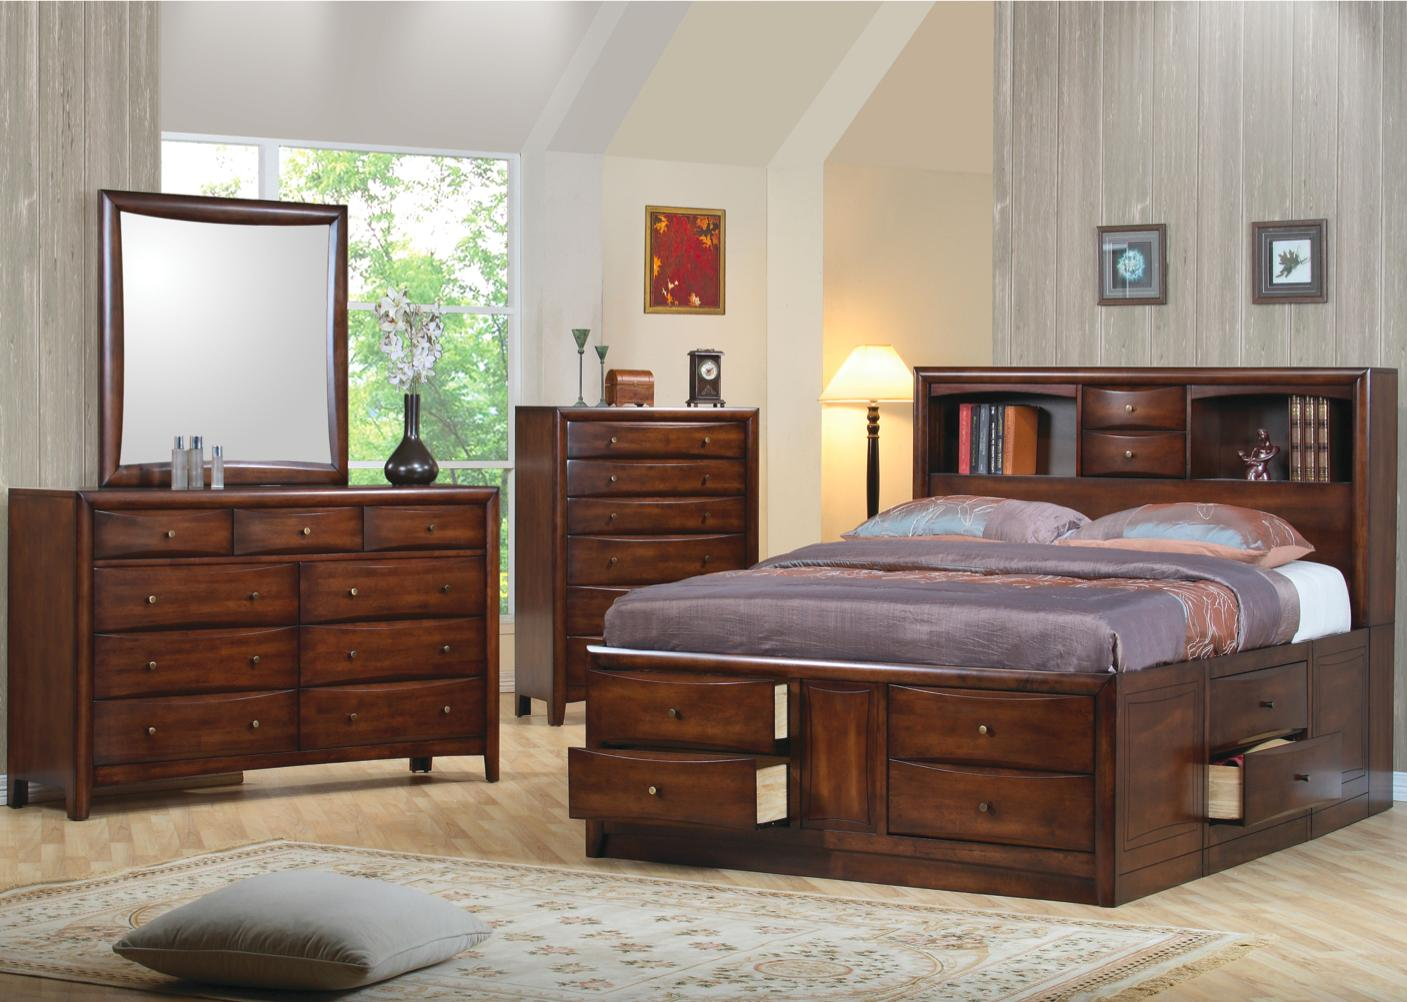 Coaster hillary and scottsdale contemporary queen bookcase bed with underbed storage drawers Queen bedroom sets with underbed storage